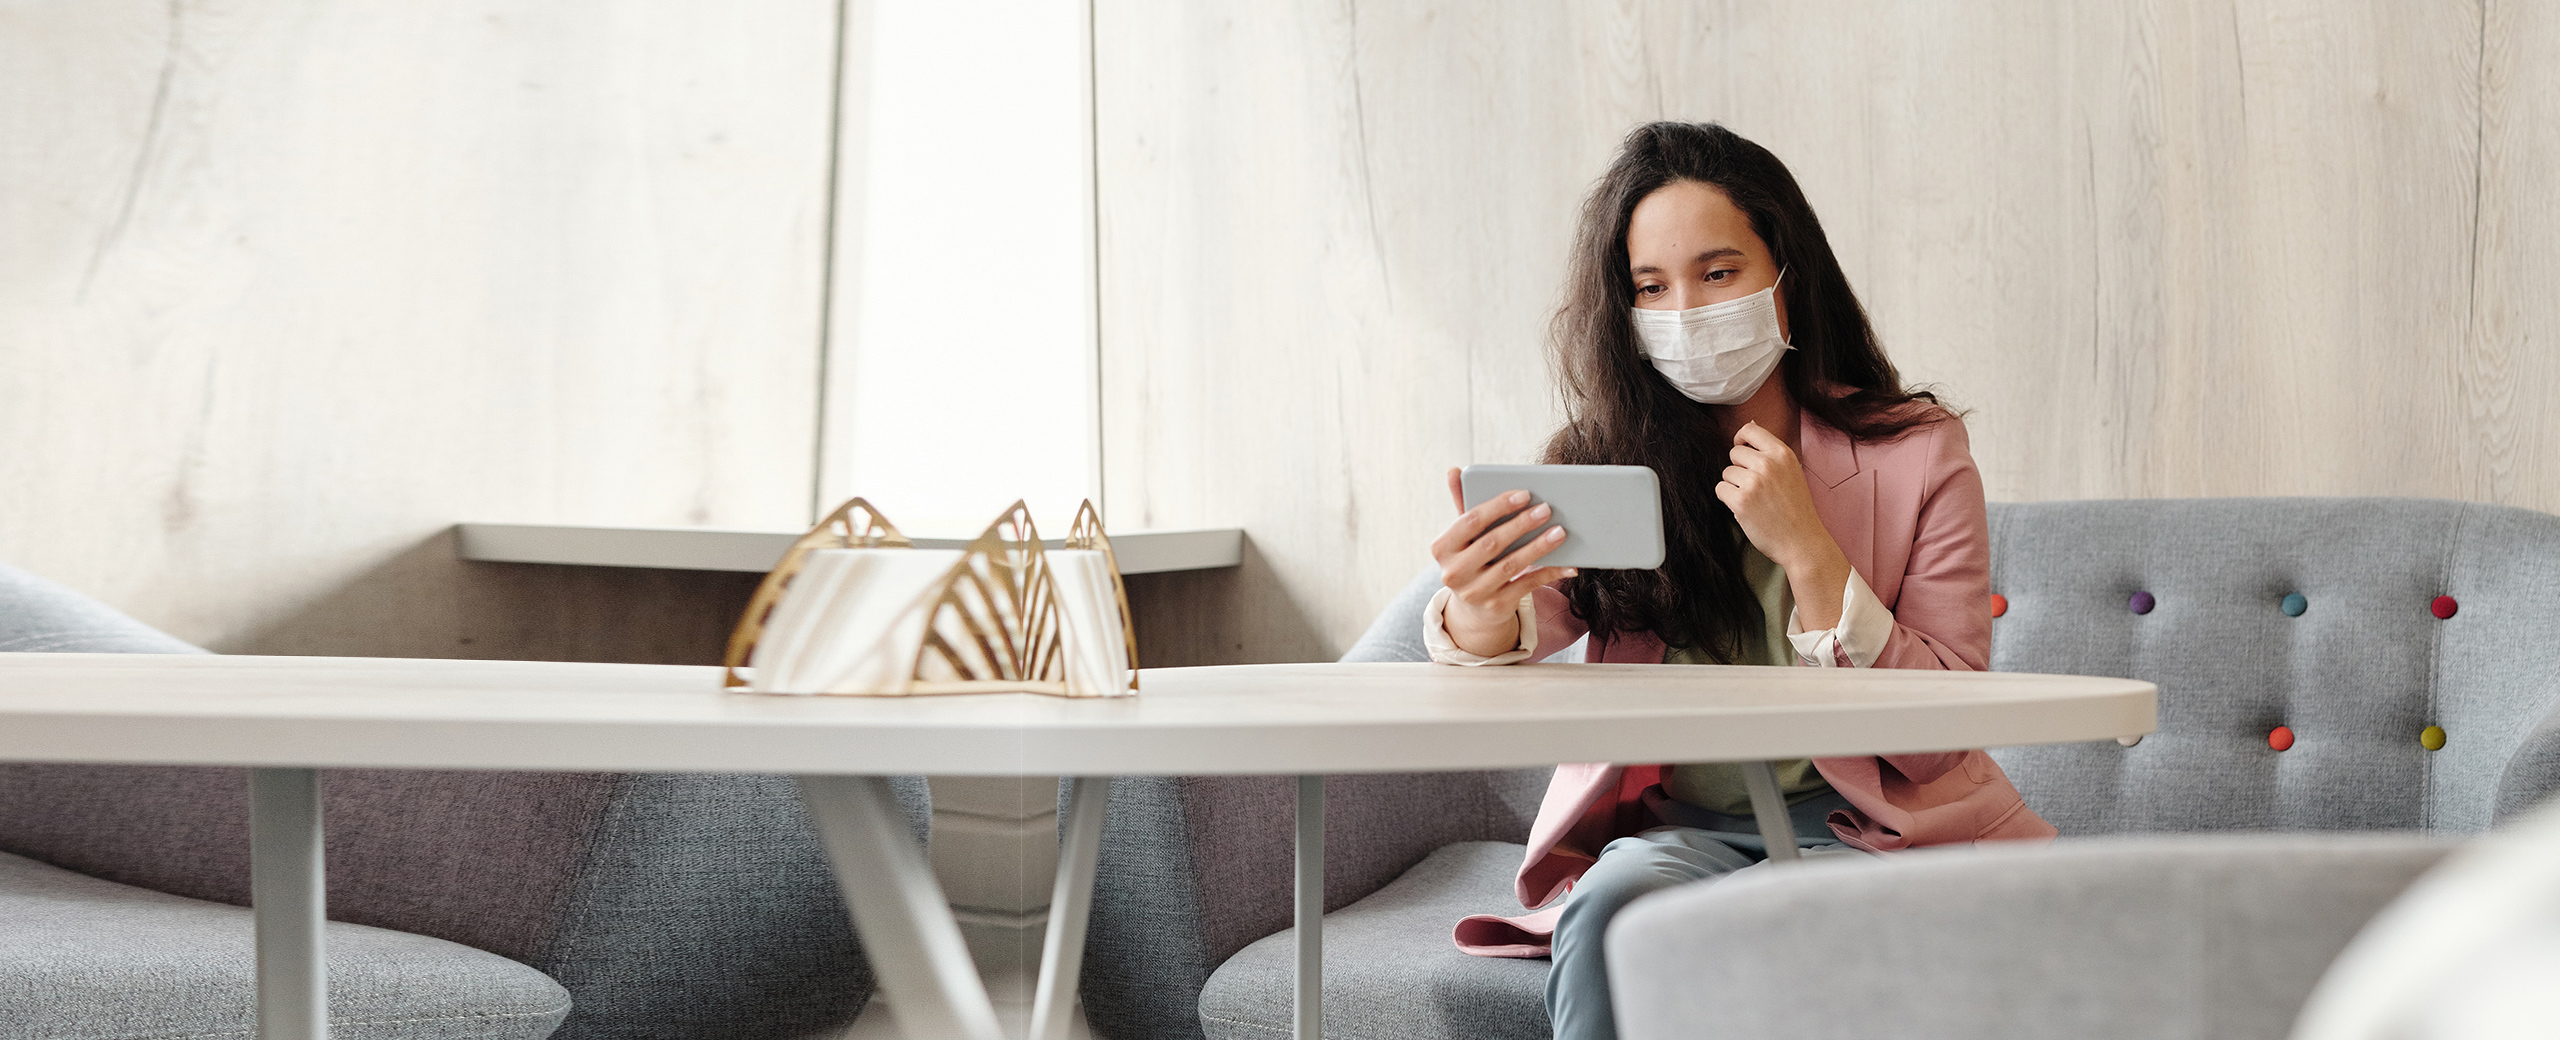 business woman in mask looking at her mobile device